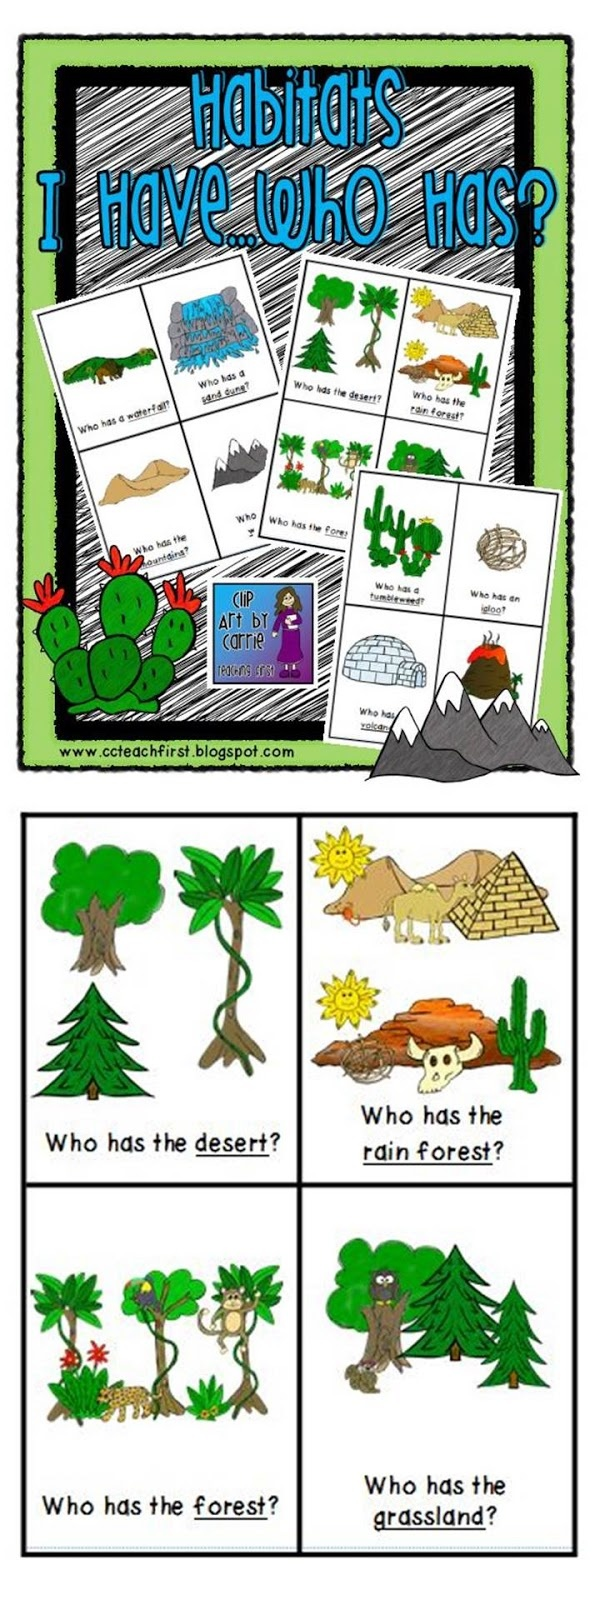 Clip Art by Carrie Teaching First: Habitats I Have Who Has Game